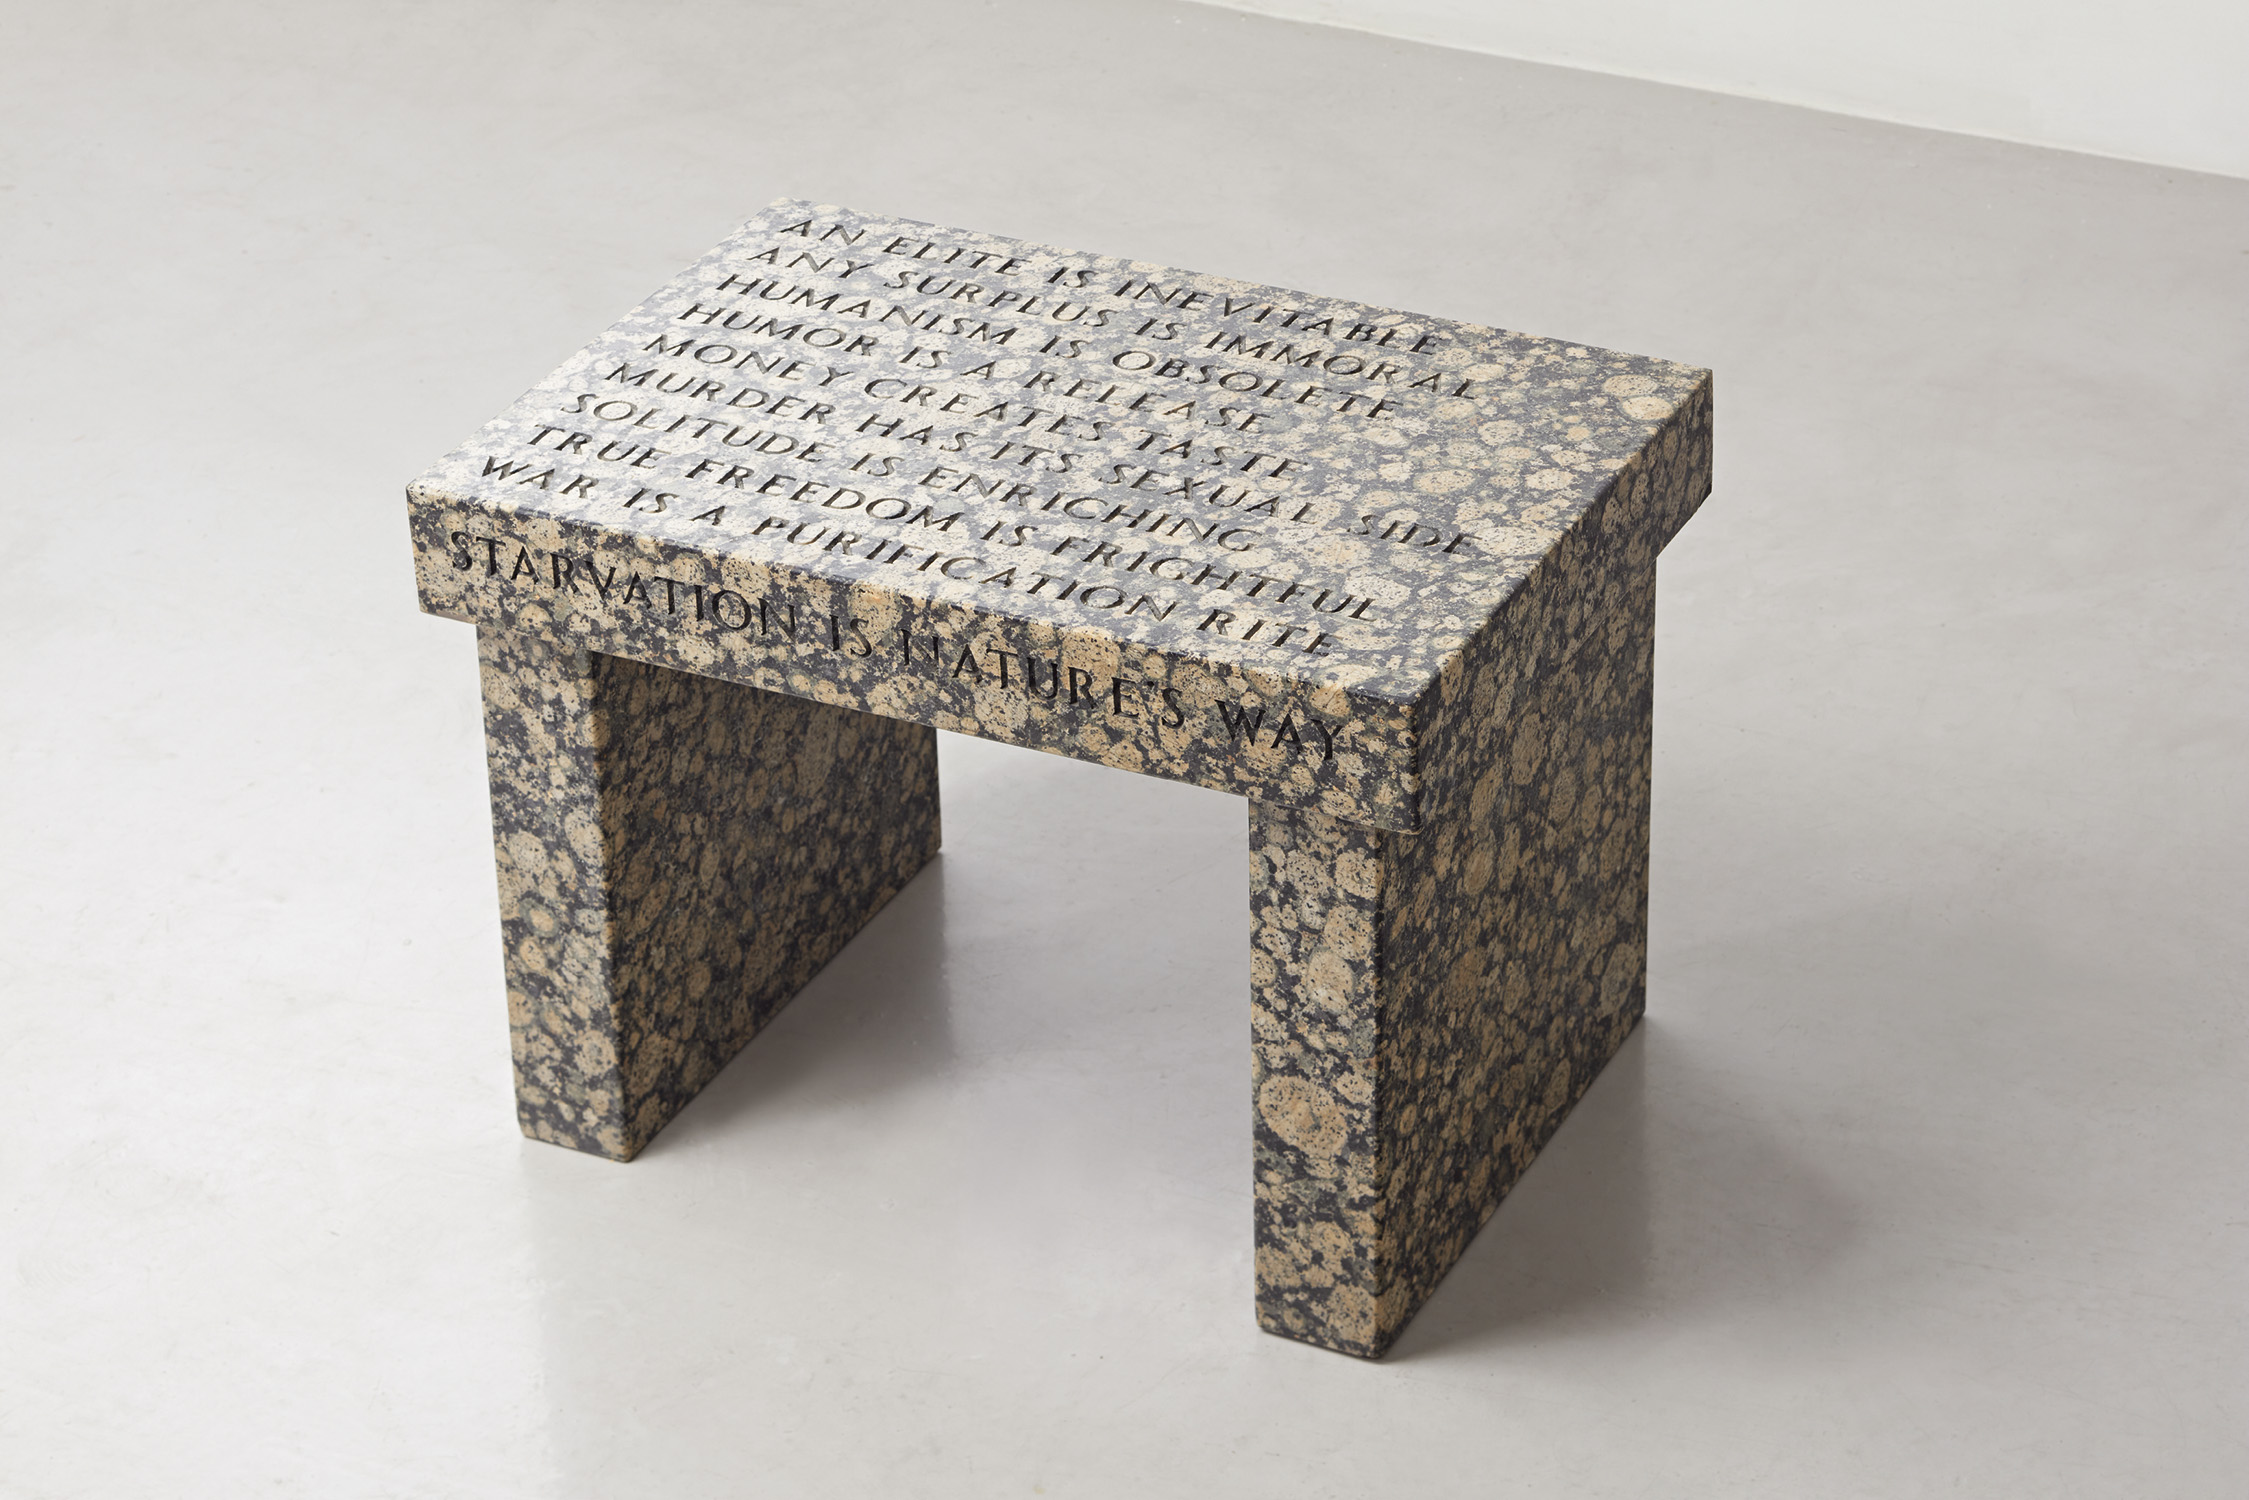 JENNY HOLZER Truism Footstool 1988 incised Baltic brown granite 41.4 x 58.5 x 40.3 cm. (16 1/4 x 23 x 15 7/8 in.) Executed in 1988, this work is from an edition of 40 plus 8 artist's proofs. Estimate HK$150,000 – 250,000 / €17,000-28,300 / $19,200-32,100